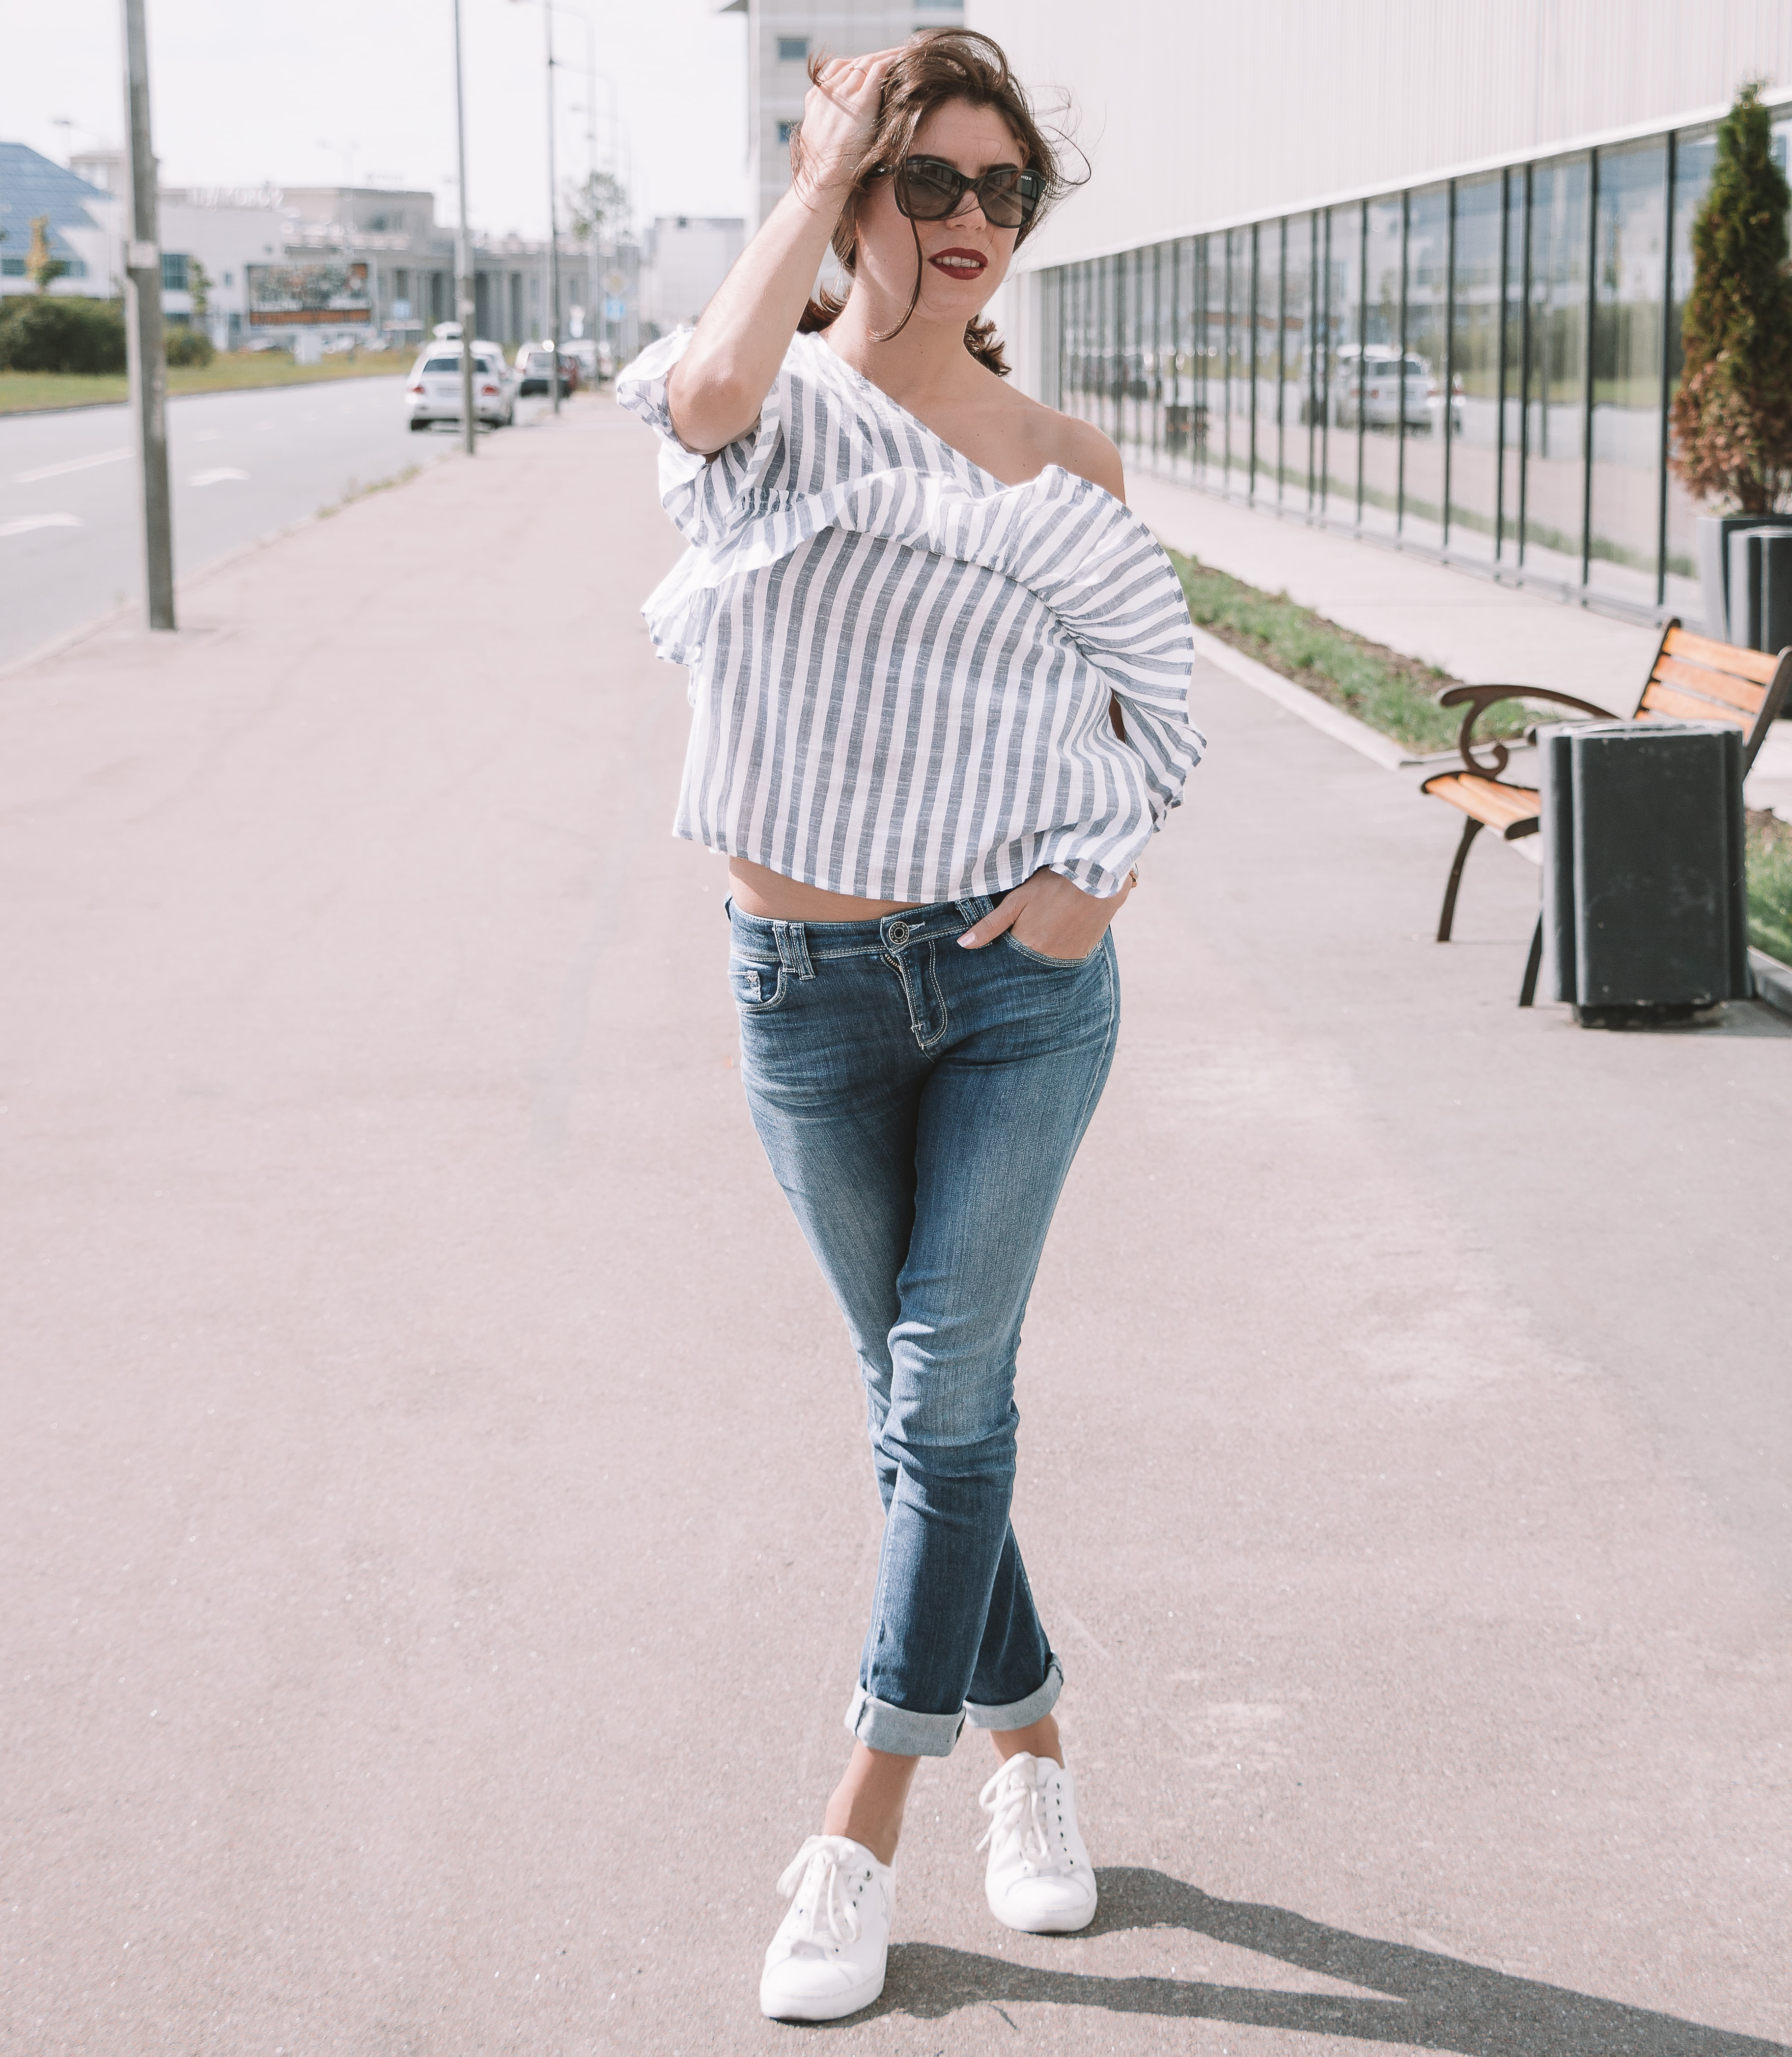 woman in white and gray vertical striped blouse and blue denim jeans wearing sunglasses standing beside road during daytime